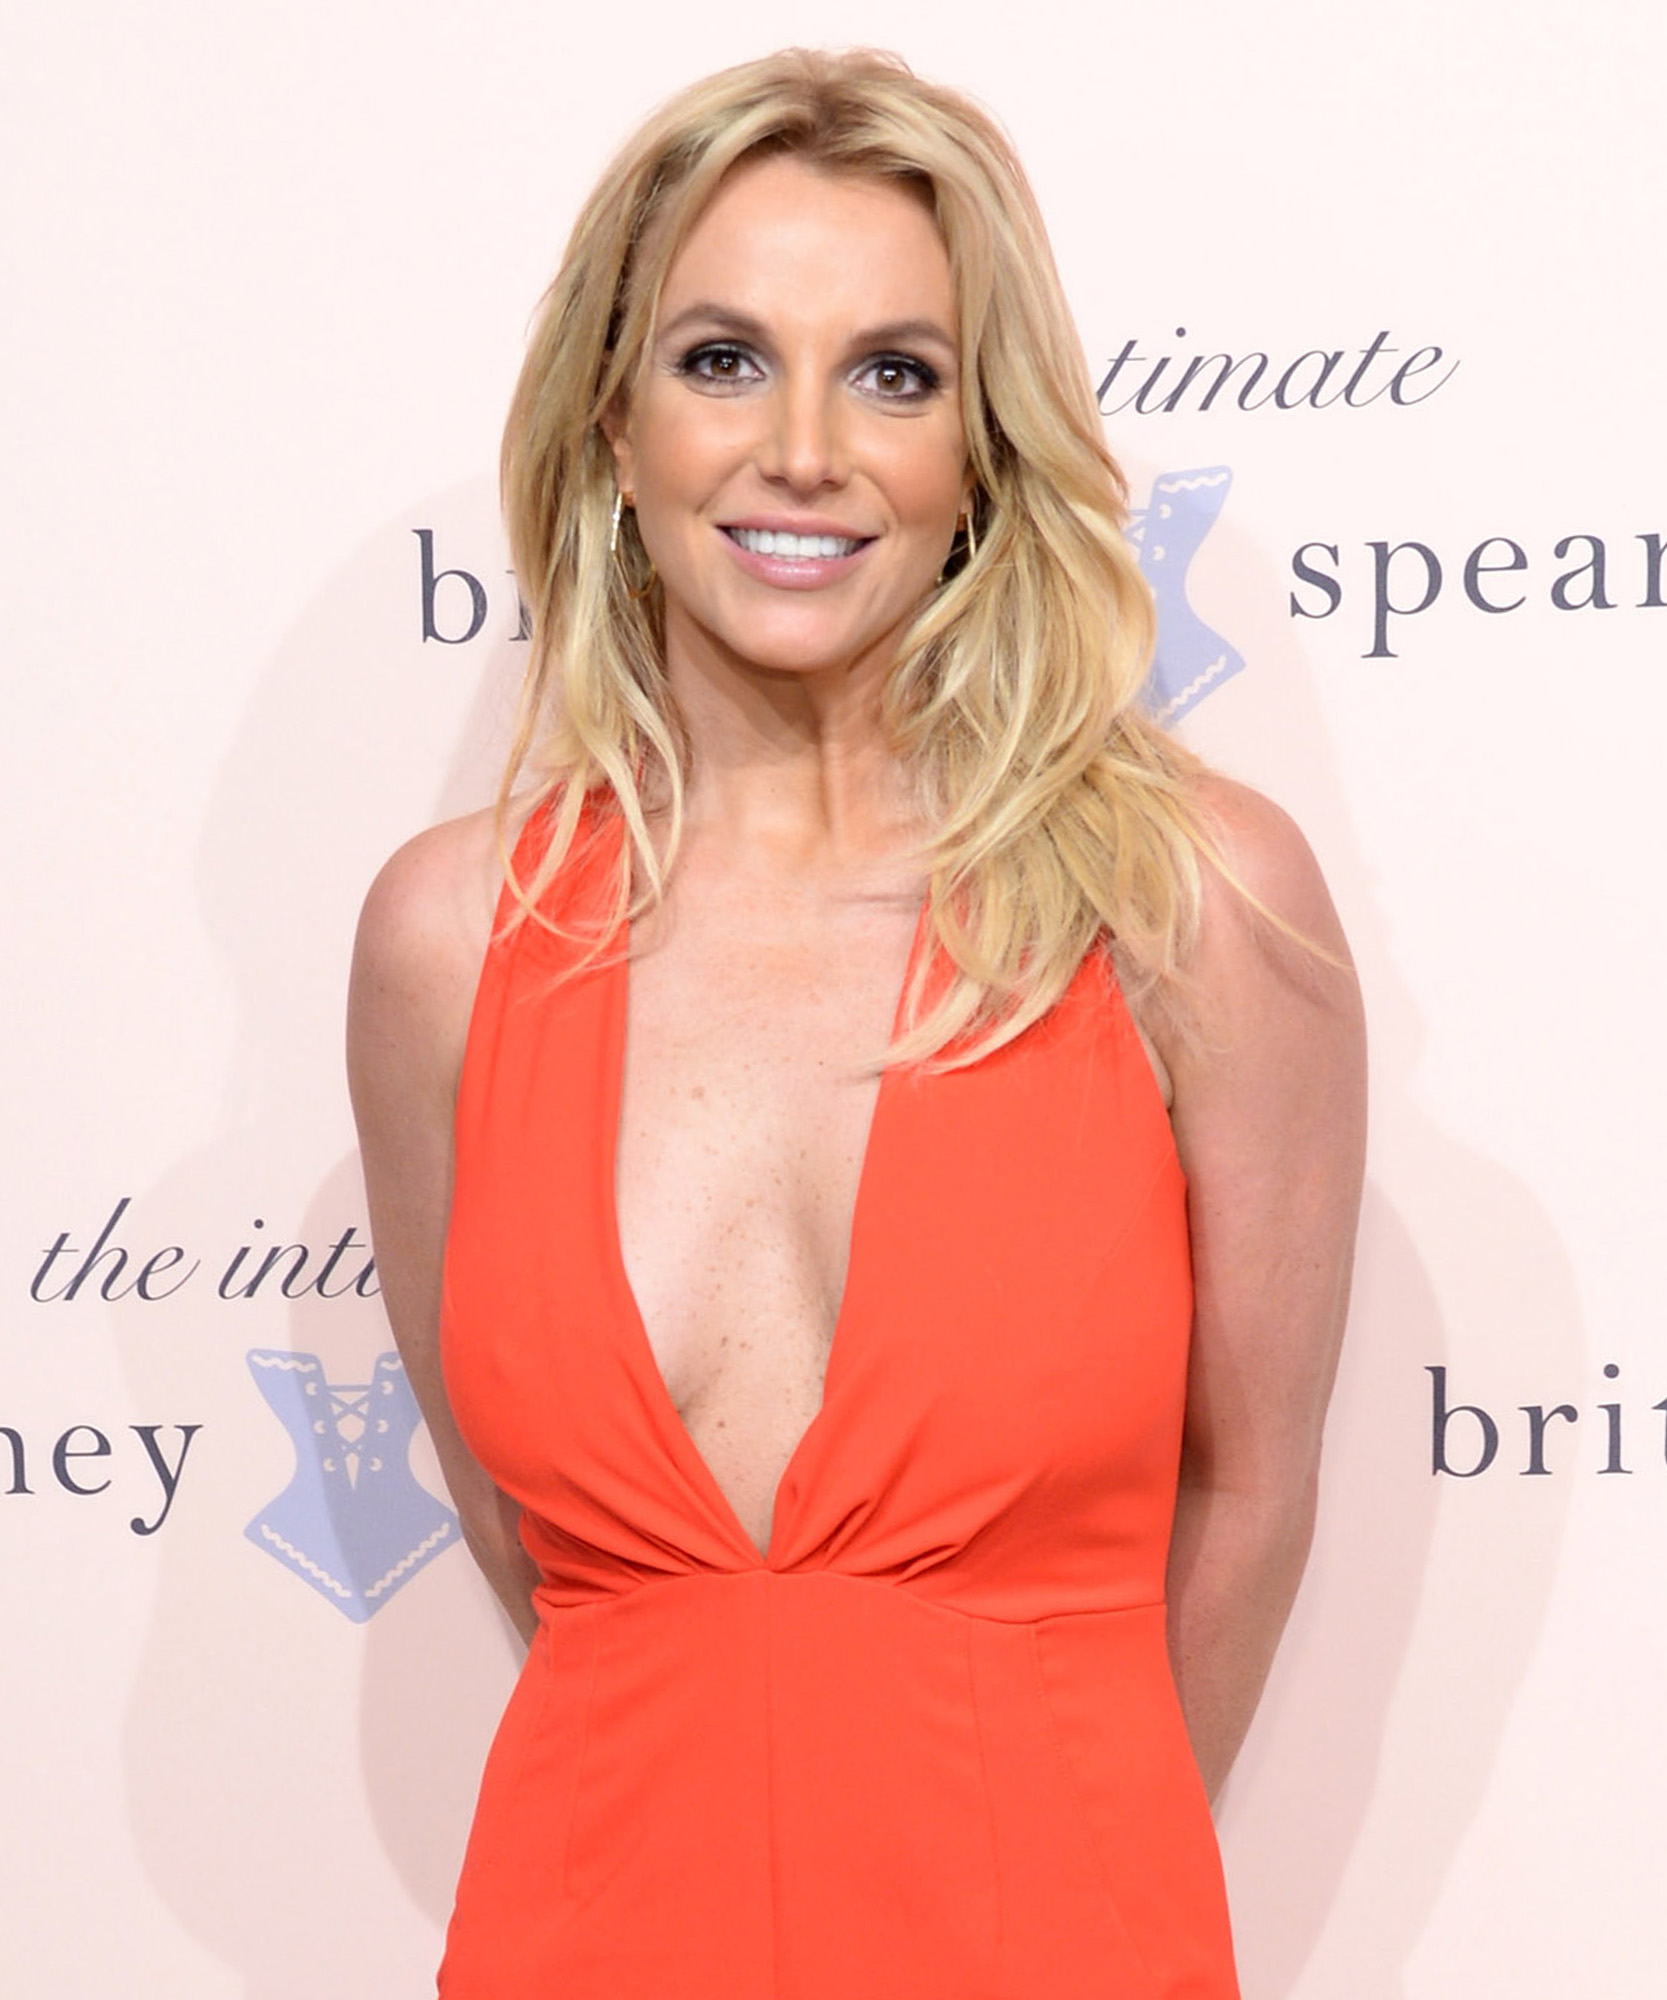 Britney Spears Intimate Britney Spears Launch - Lead 2016